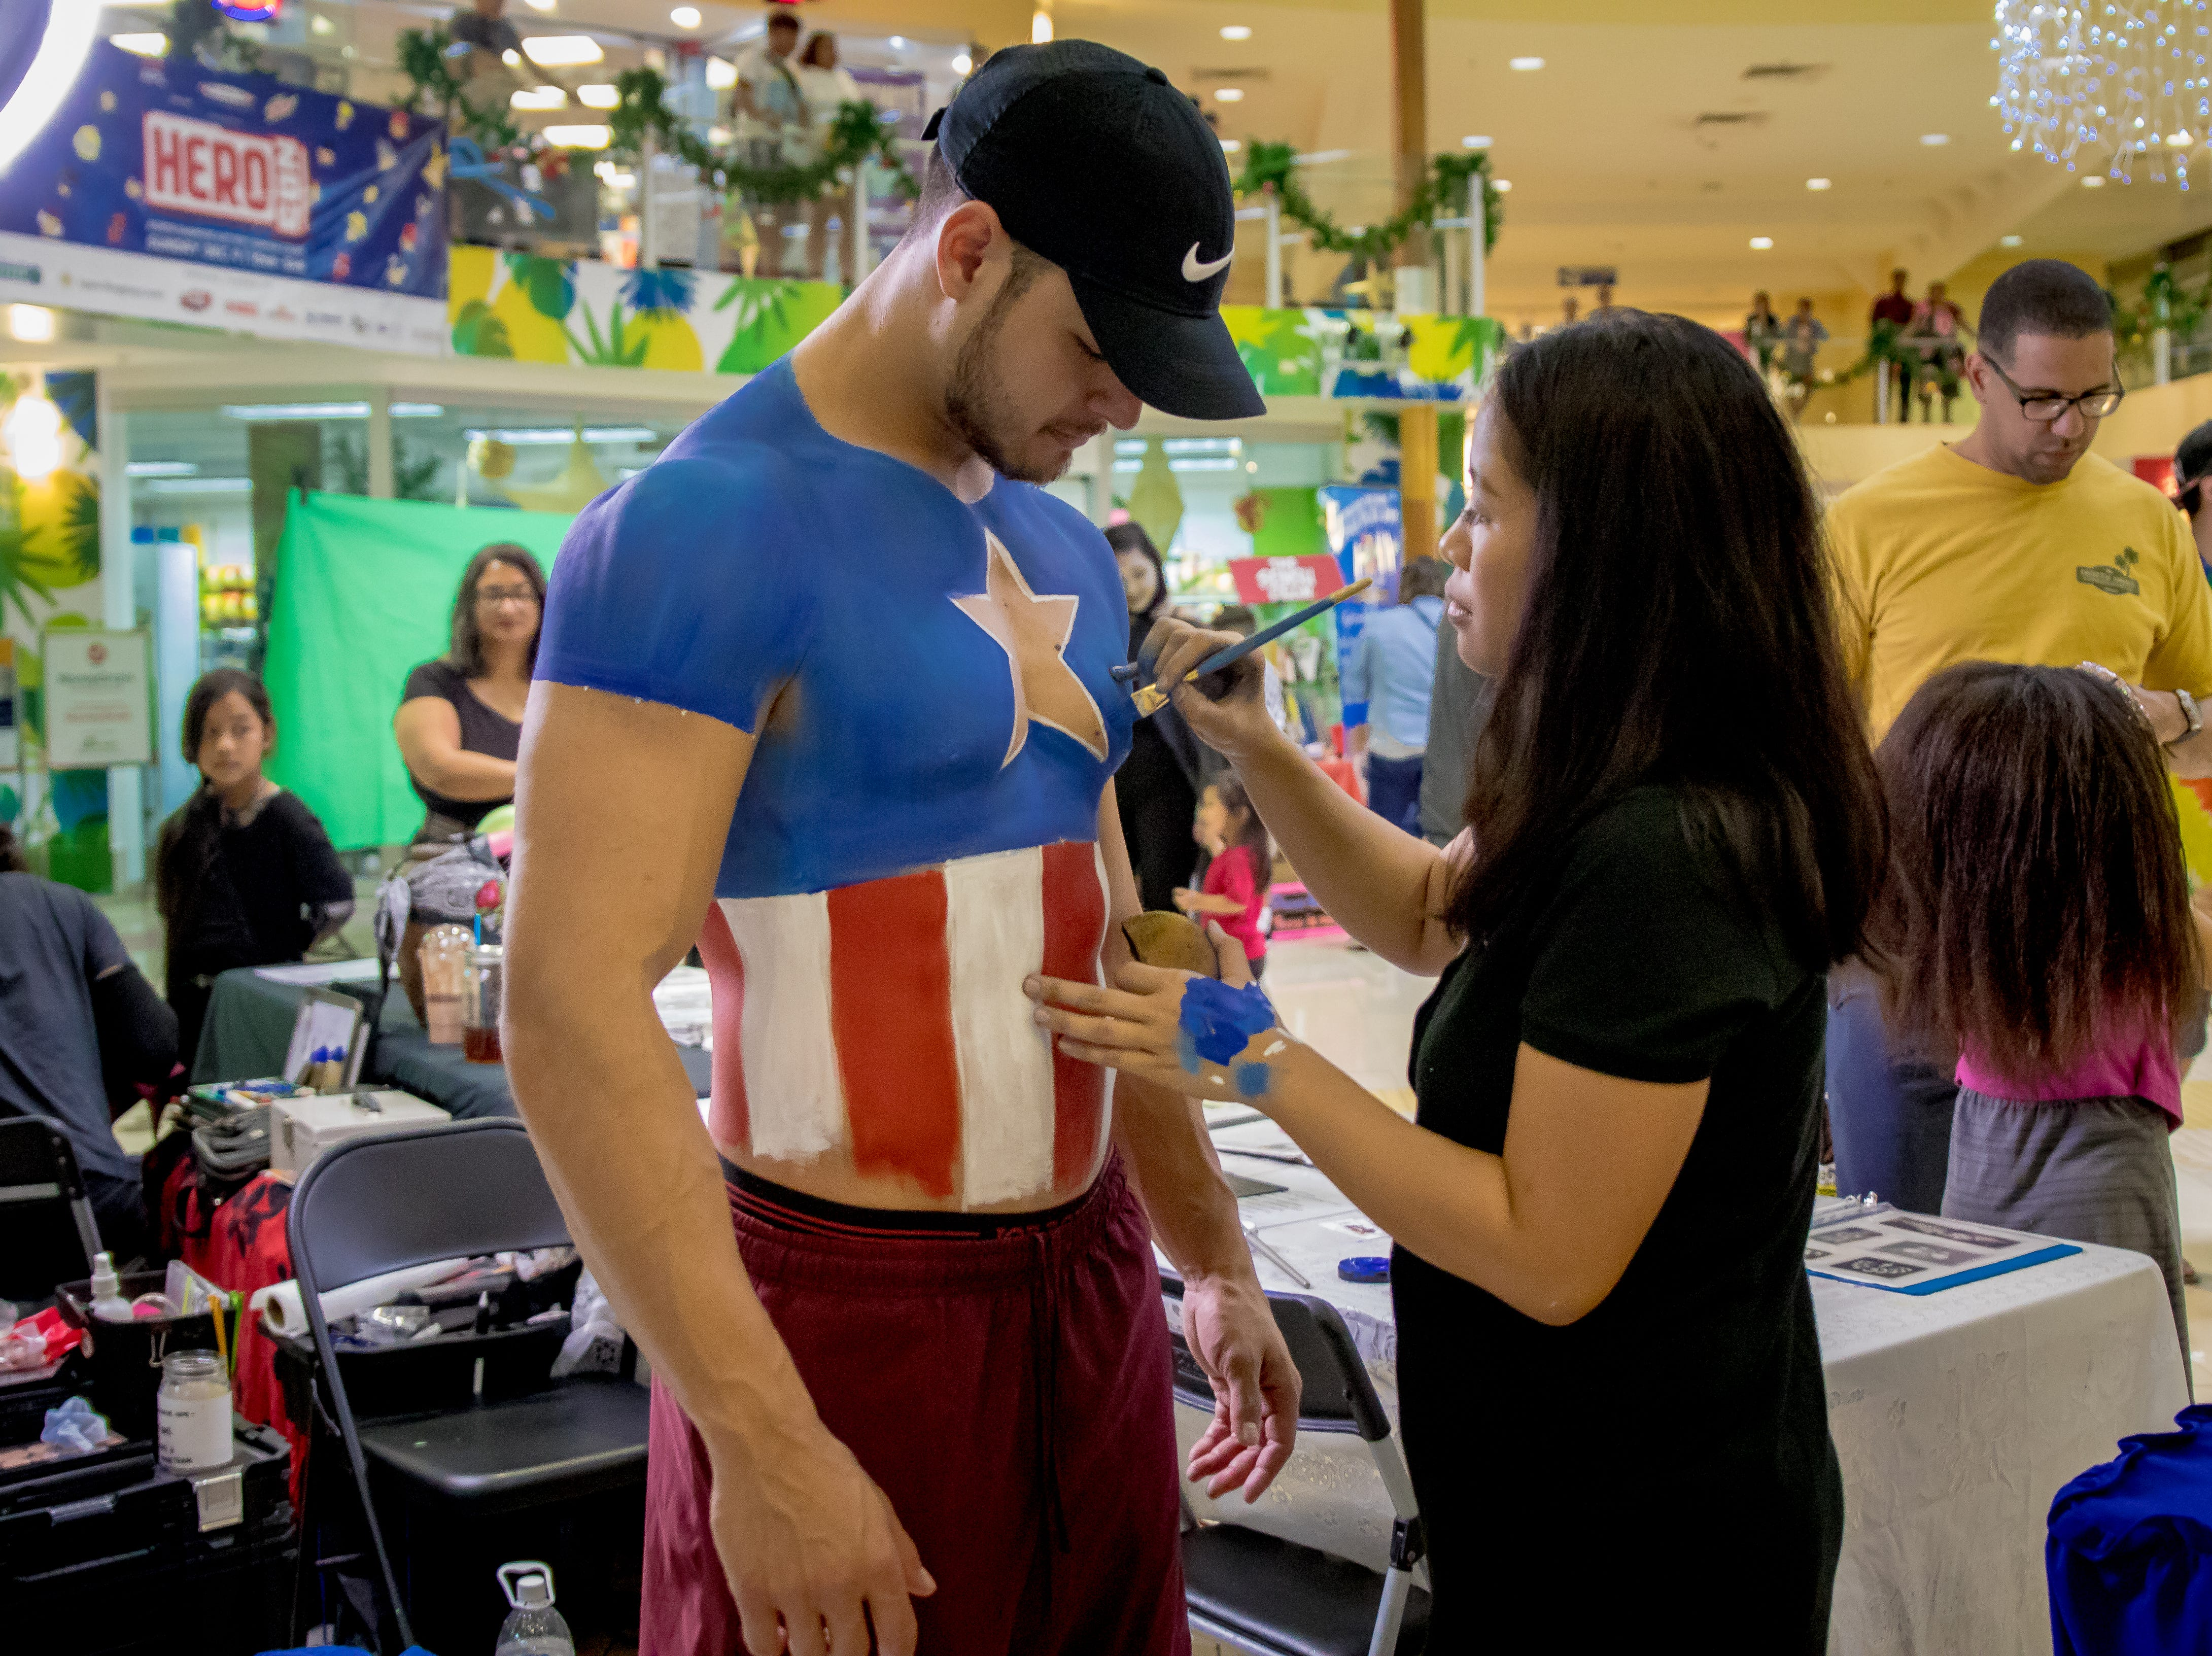 Jonathan Muth gets his body painted as Captain America by Julie Ann Donato of Muse Face and Body Art during the Herocon event held at Agana Shopping Center on Dec. 9.